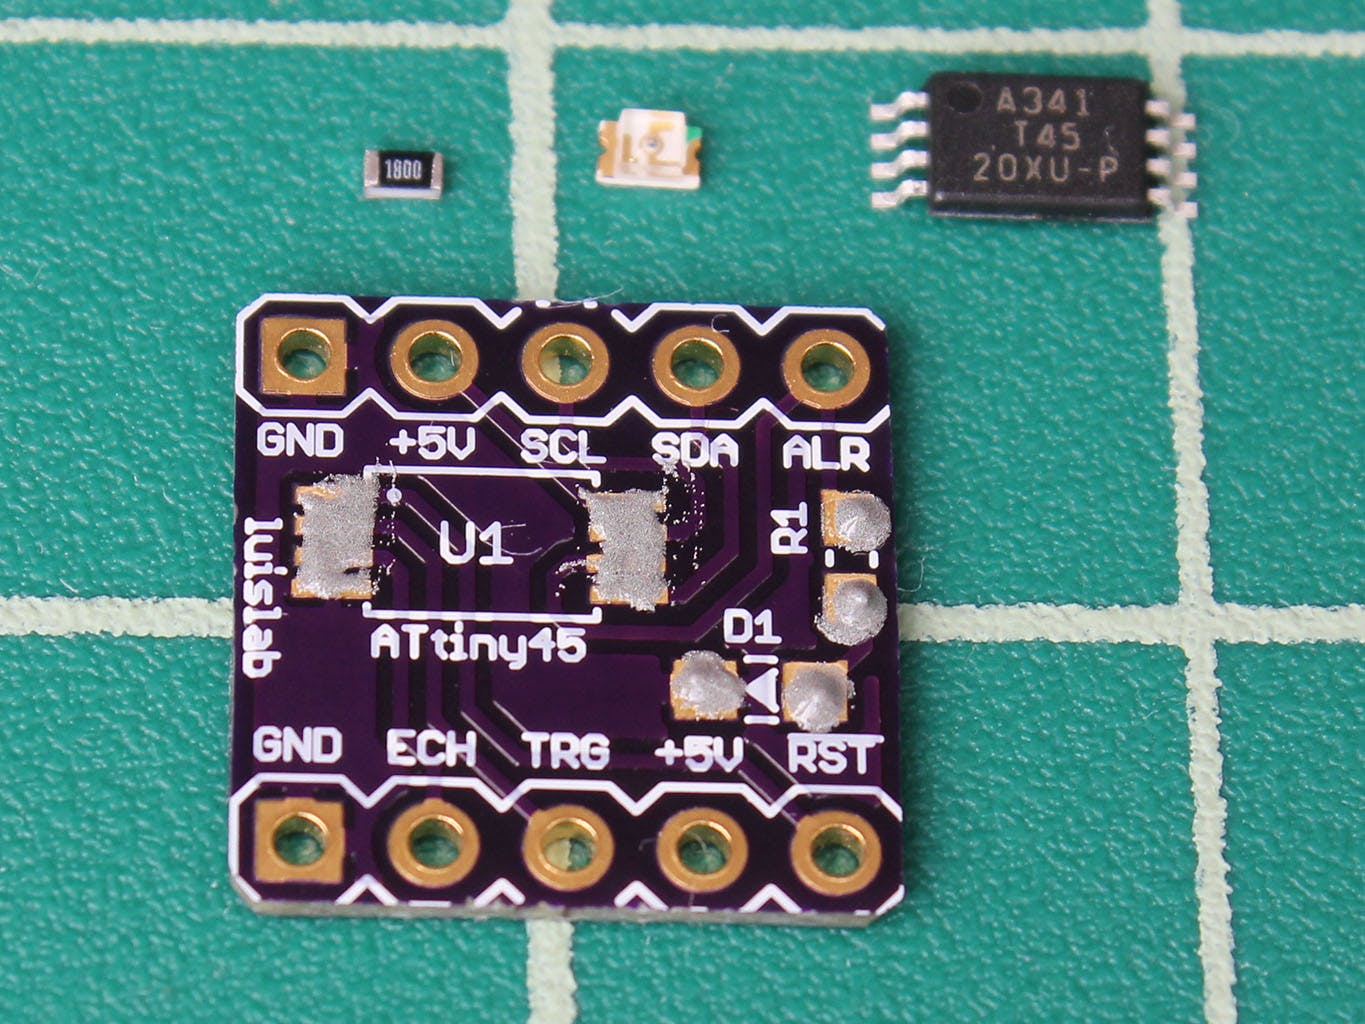 ATtiny45 board with solder paste